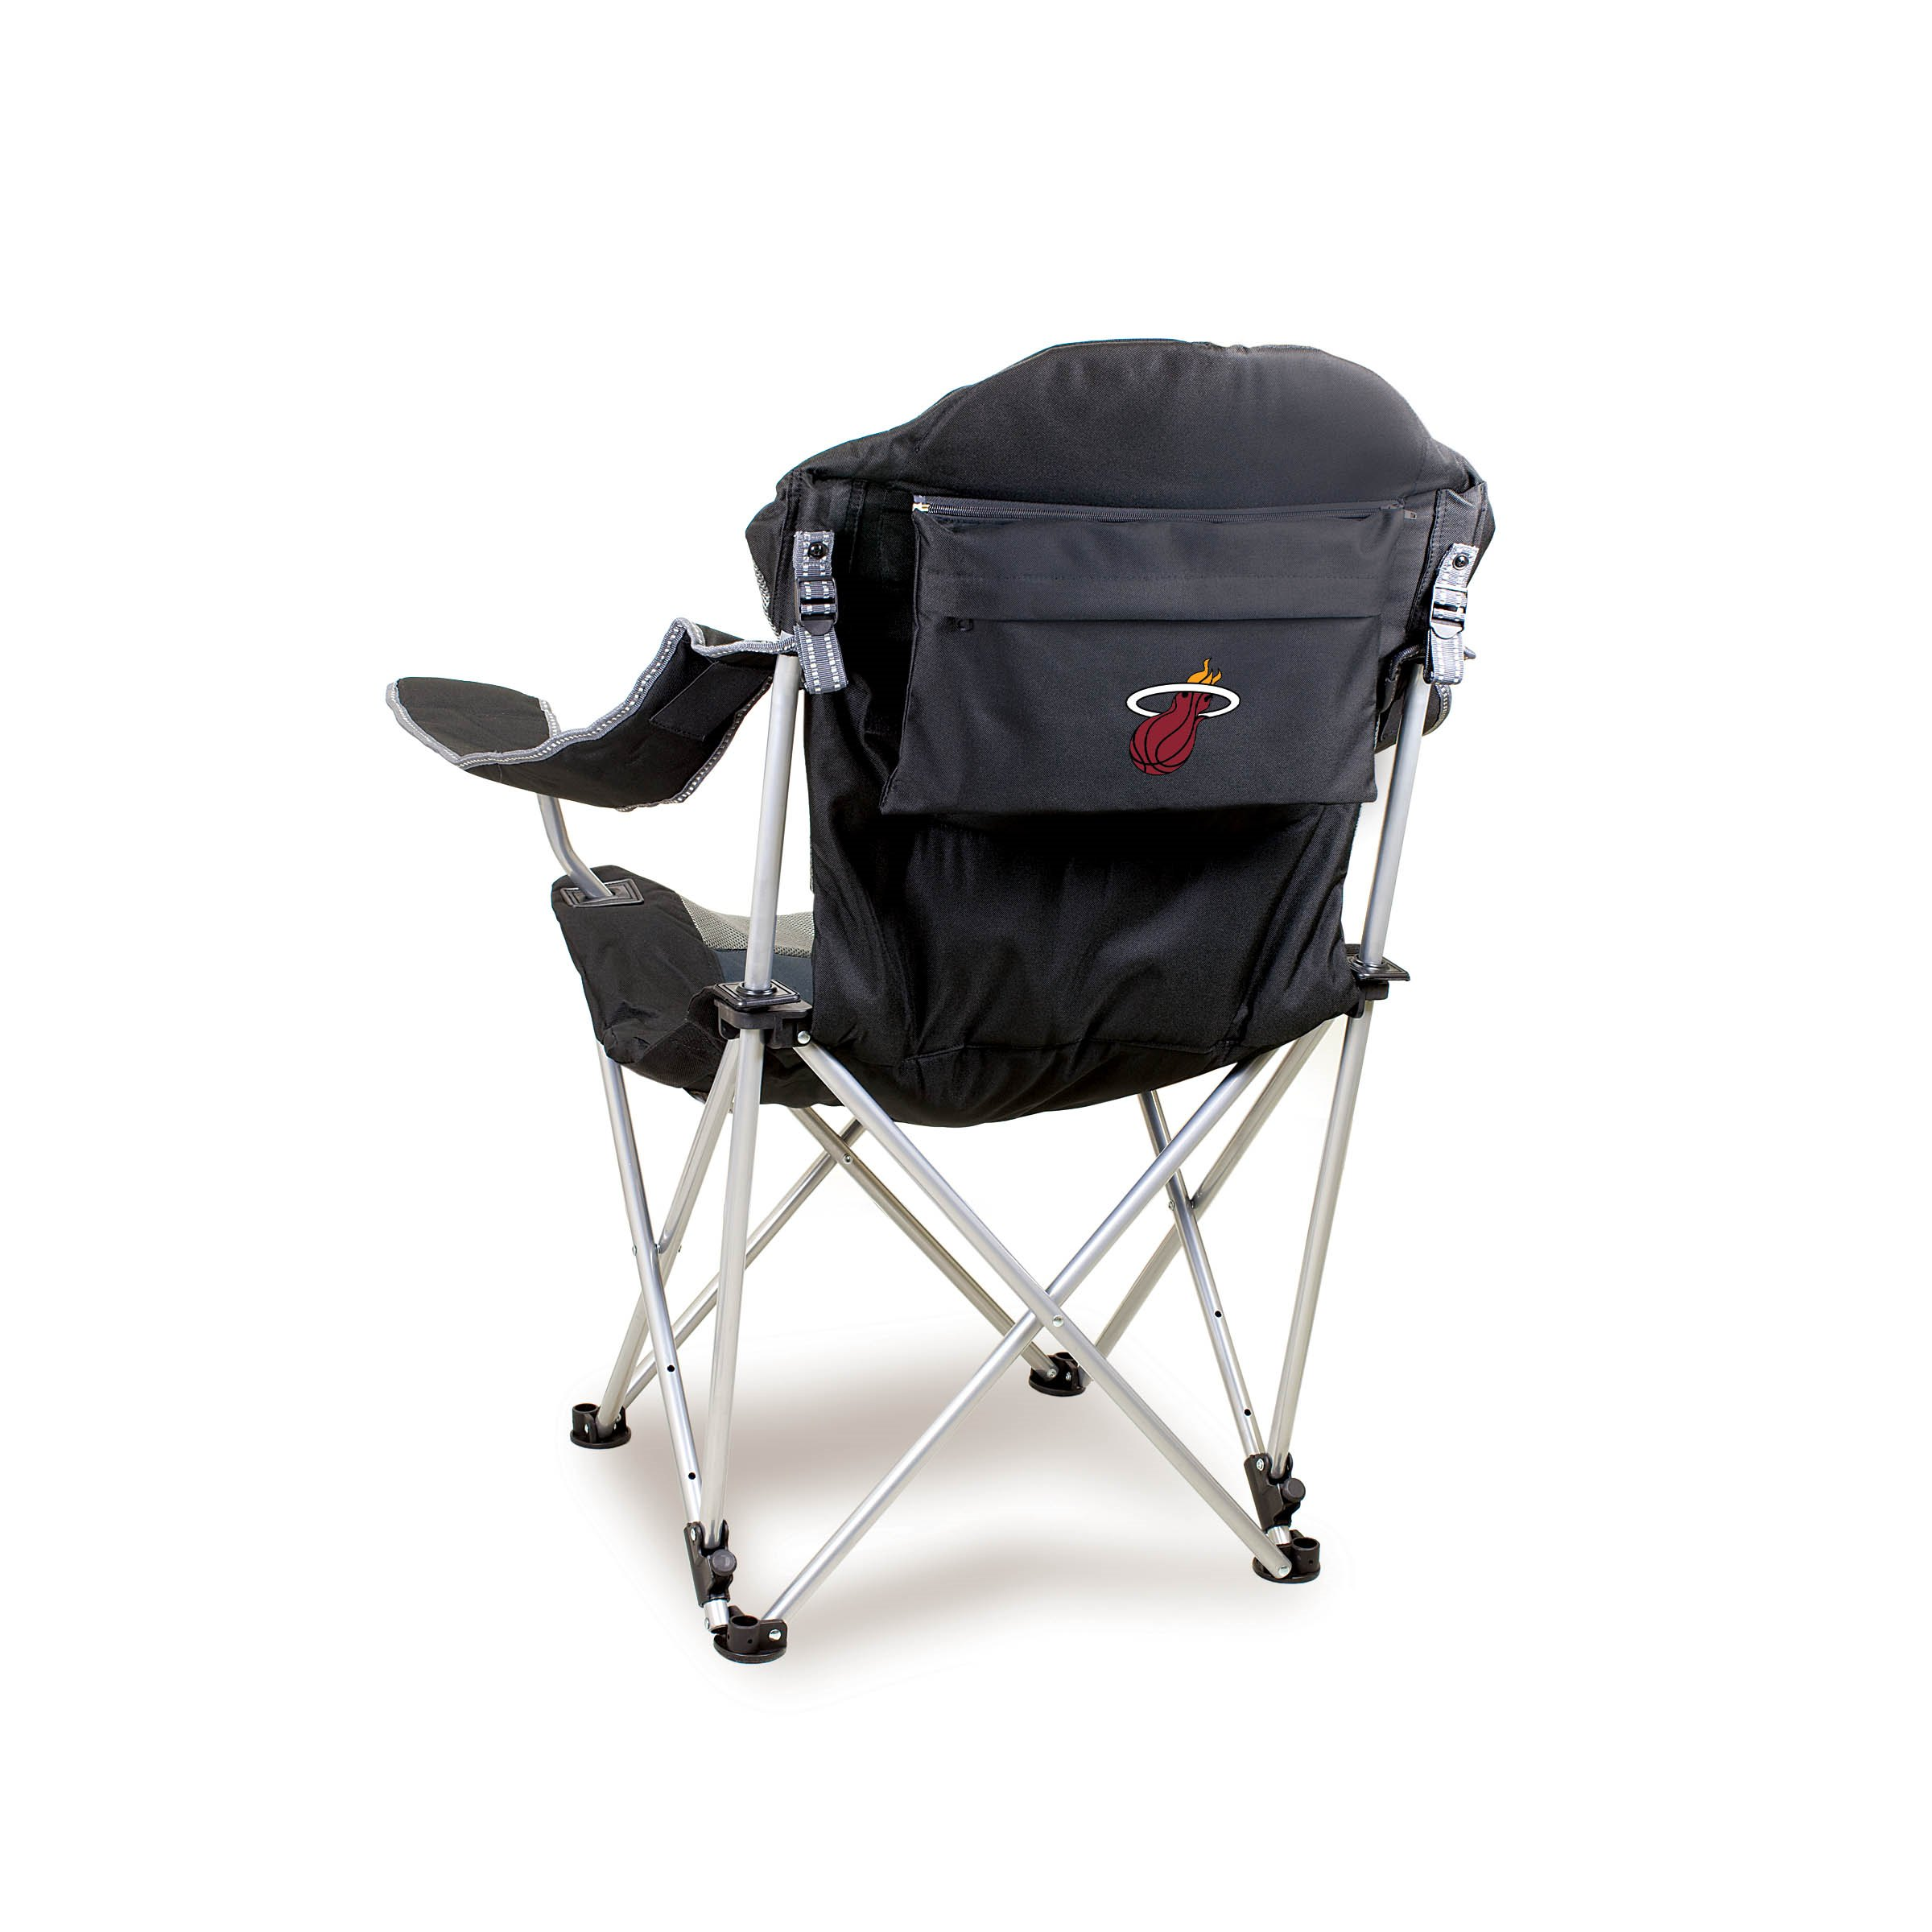 Picnic Time Nba Reclining Camp Chair Miami Heat